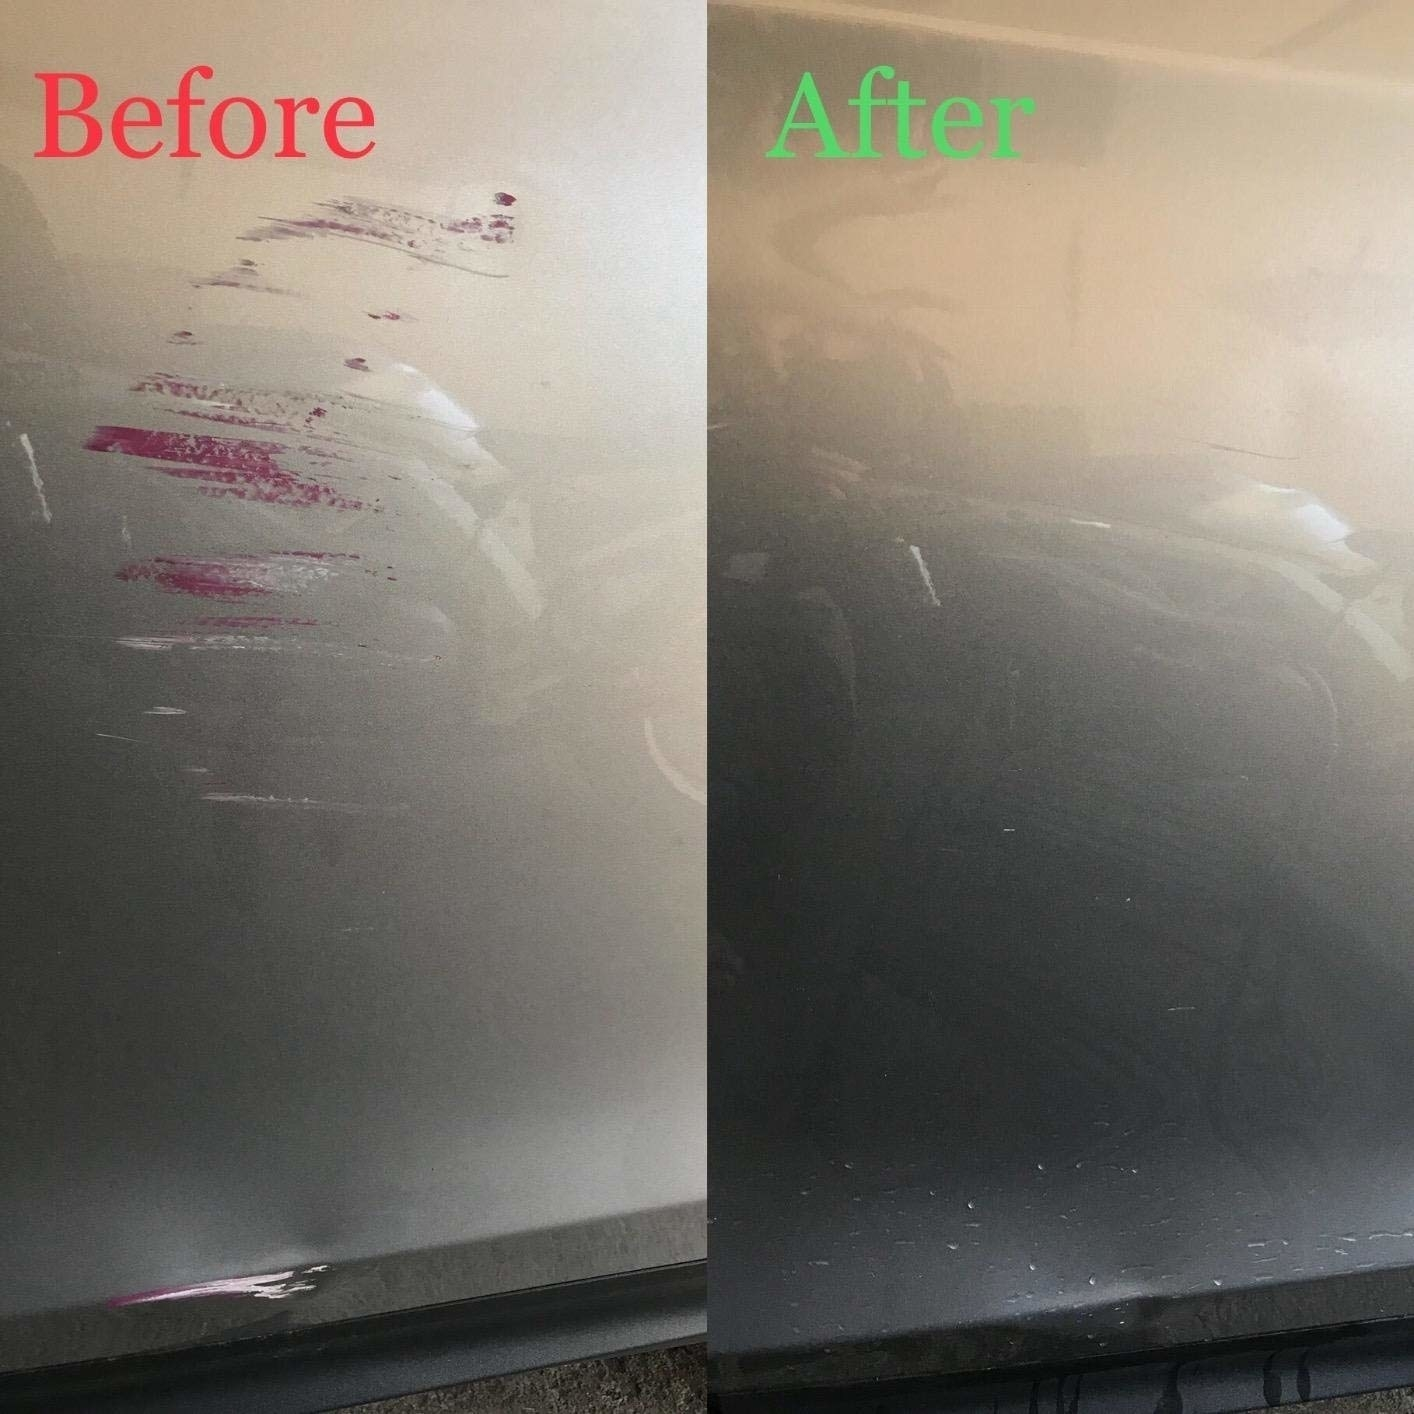 Reviewer's before and after photos showing the scratch remover got rid of purple-red scratch makrs on their silver car